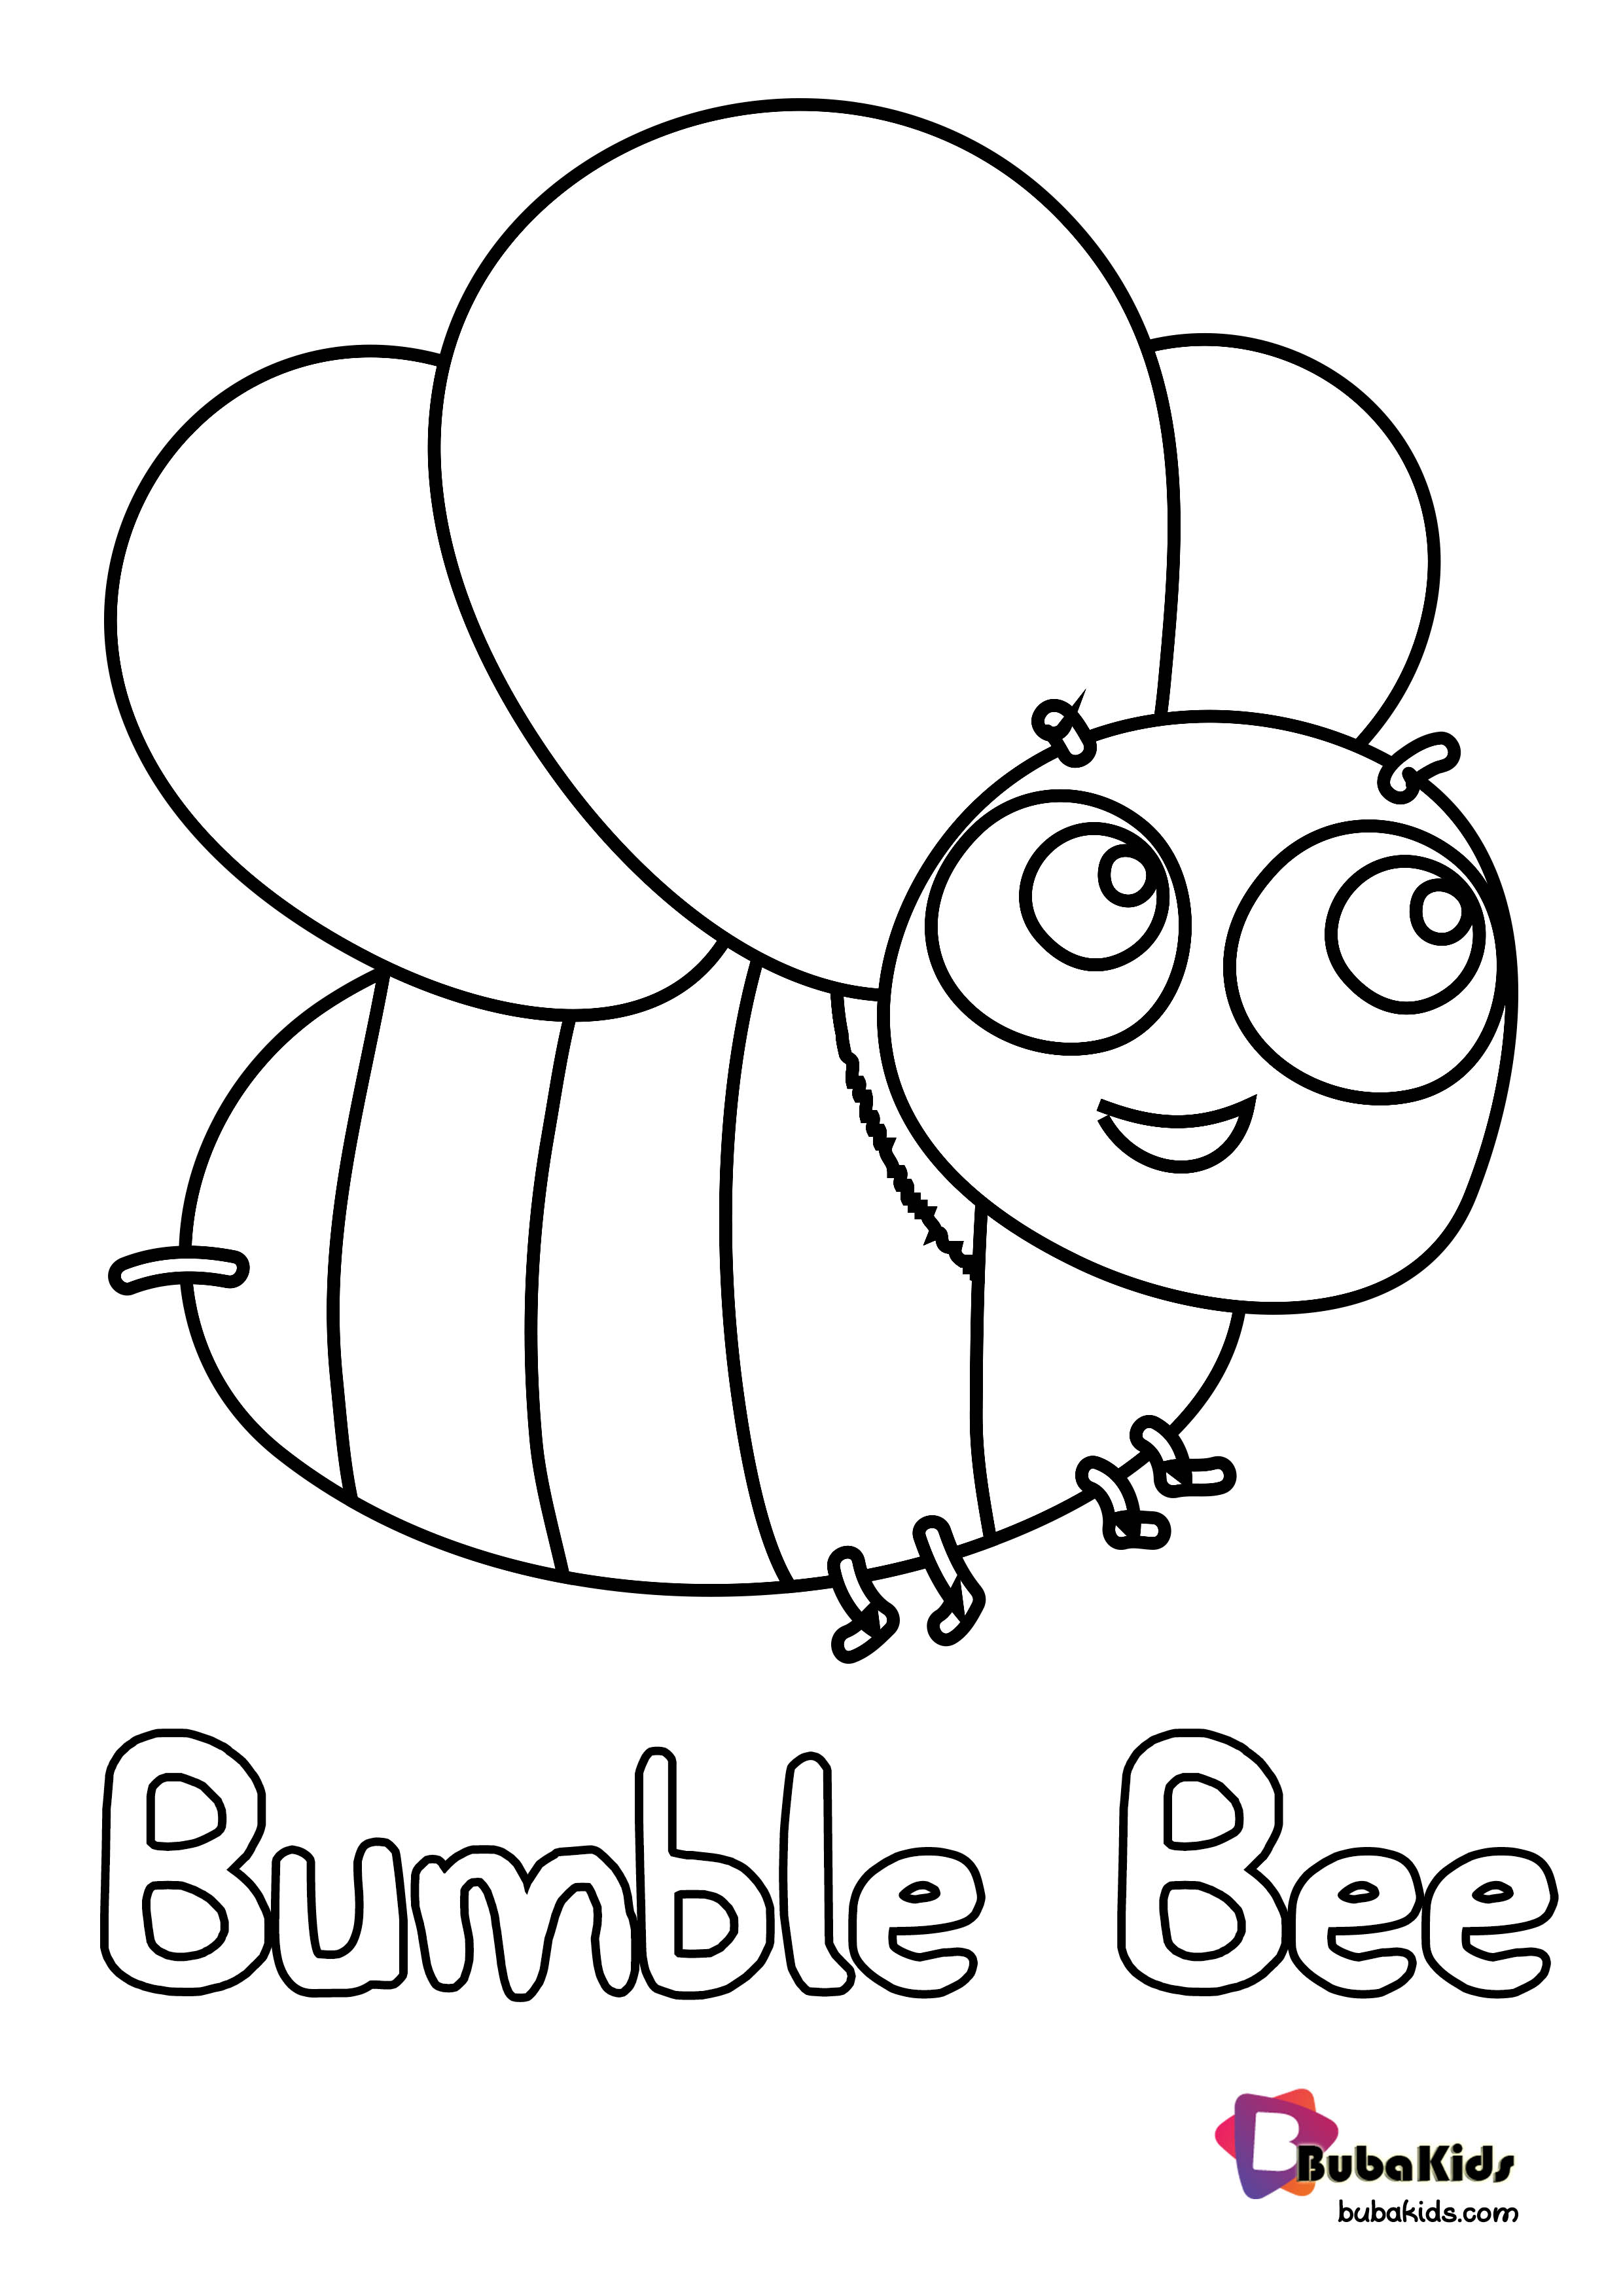 printable bumble bee coloring page bumblebee coloring pages best coloring pages for kids bumble page bee printable coloring